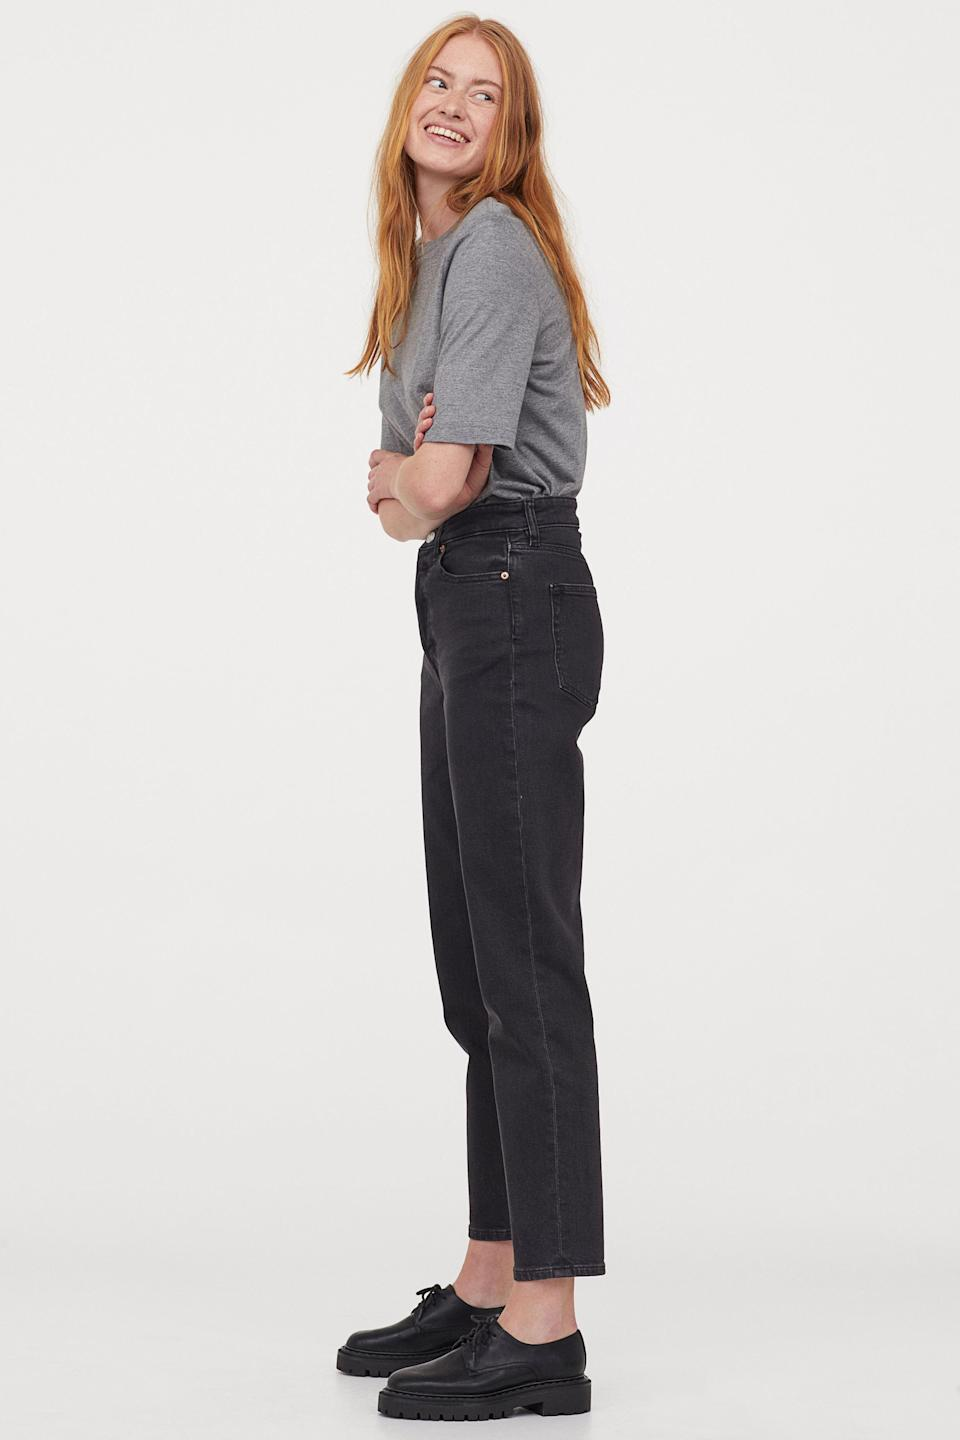 """<br><br><strong>H&M</strong> Mom High Ankle Jeans, $, available at <a href=""""https://go.skimresources.com/?id=30283X879131&url=https%3A%2F%2Fwww2.hm.com%2Fen_us%2Fproductpage.0714790028.html"""" rel=""""nofollow noopener"""" target=""""_blank"""" data-ylk=""""slk:H&M"""" class=""""link rapid-noclick-resp"""">H&M</a>"""